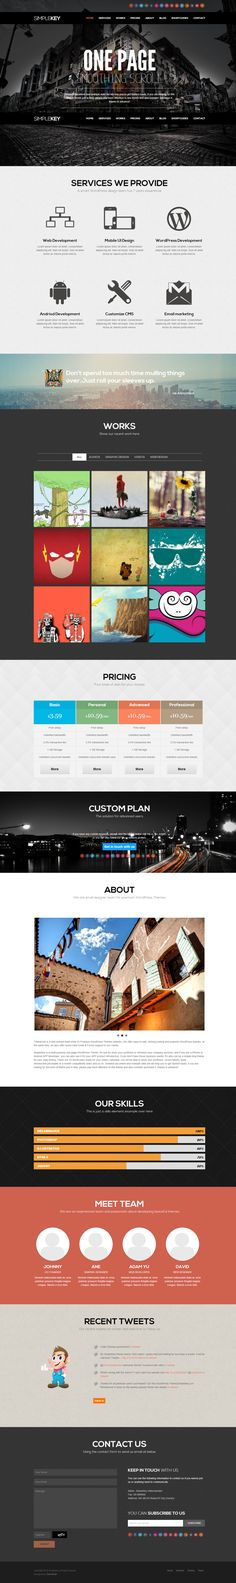 Buy SimpleKey - One Page Portfolio WordPress Theme by ThemeVan on ThemeForest. SimpleKey is one of popular One Page WordPress Theme that is easy to use and fully responsive. Web Design Examples, Web Ui Design, Web Design Company, Page Design, Company Logo, Website Design Layout, Web Layout, Website Designs, Website Themes